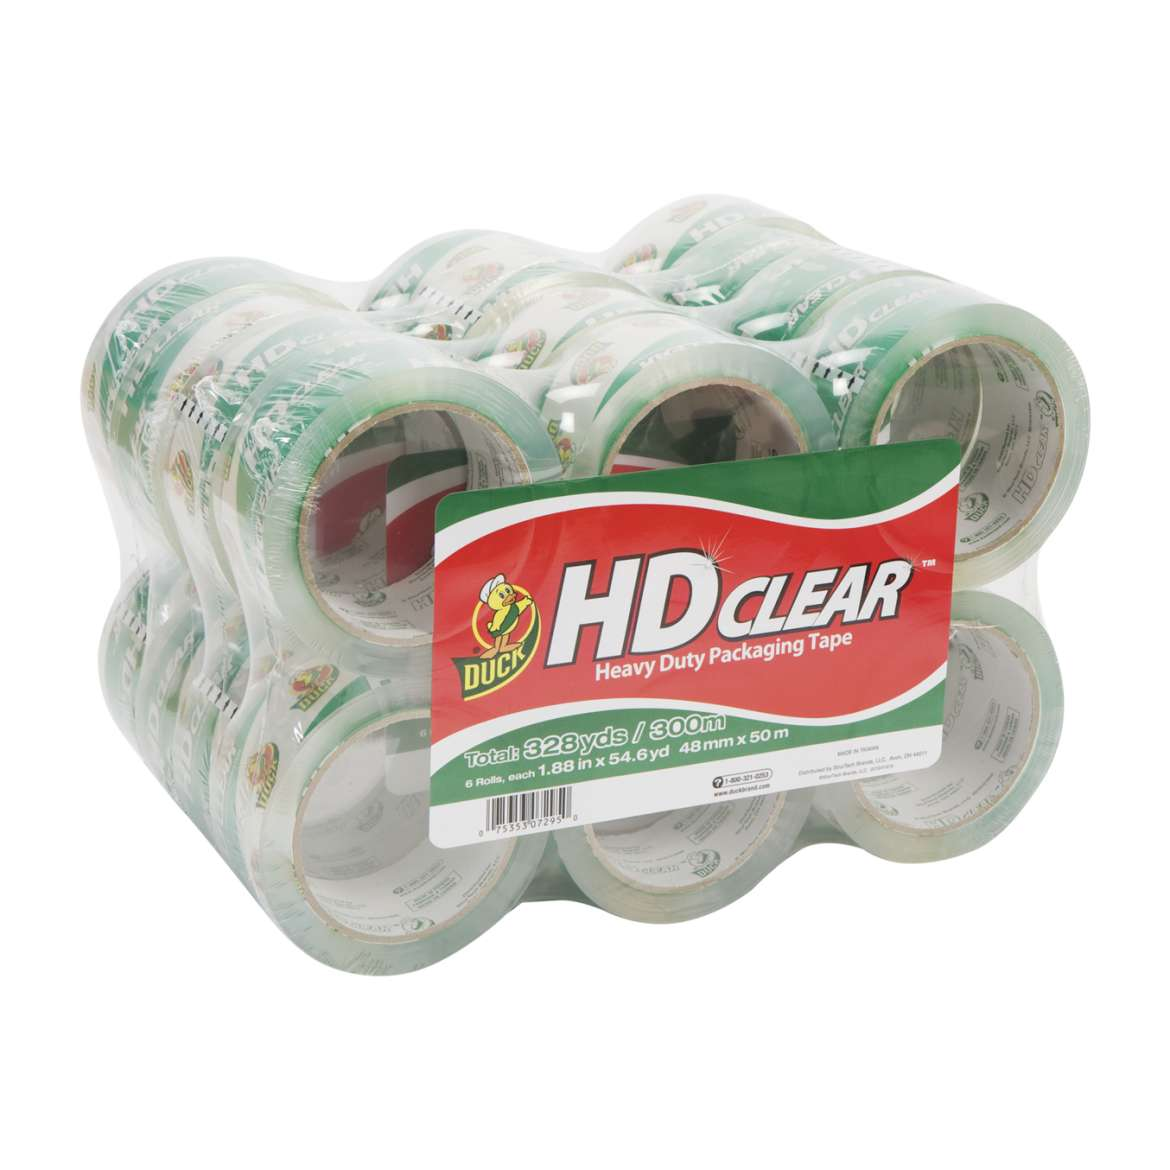 HD Clear Heavy Duty Packaging Tape - Clear, 24 pk, 1.88 in. x 54.6 yd.